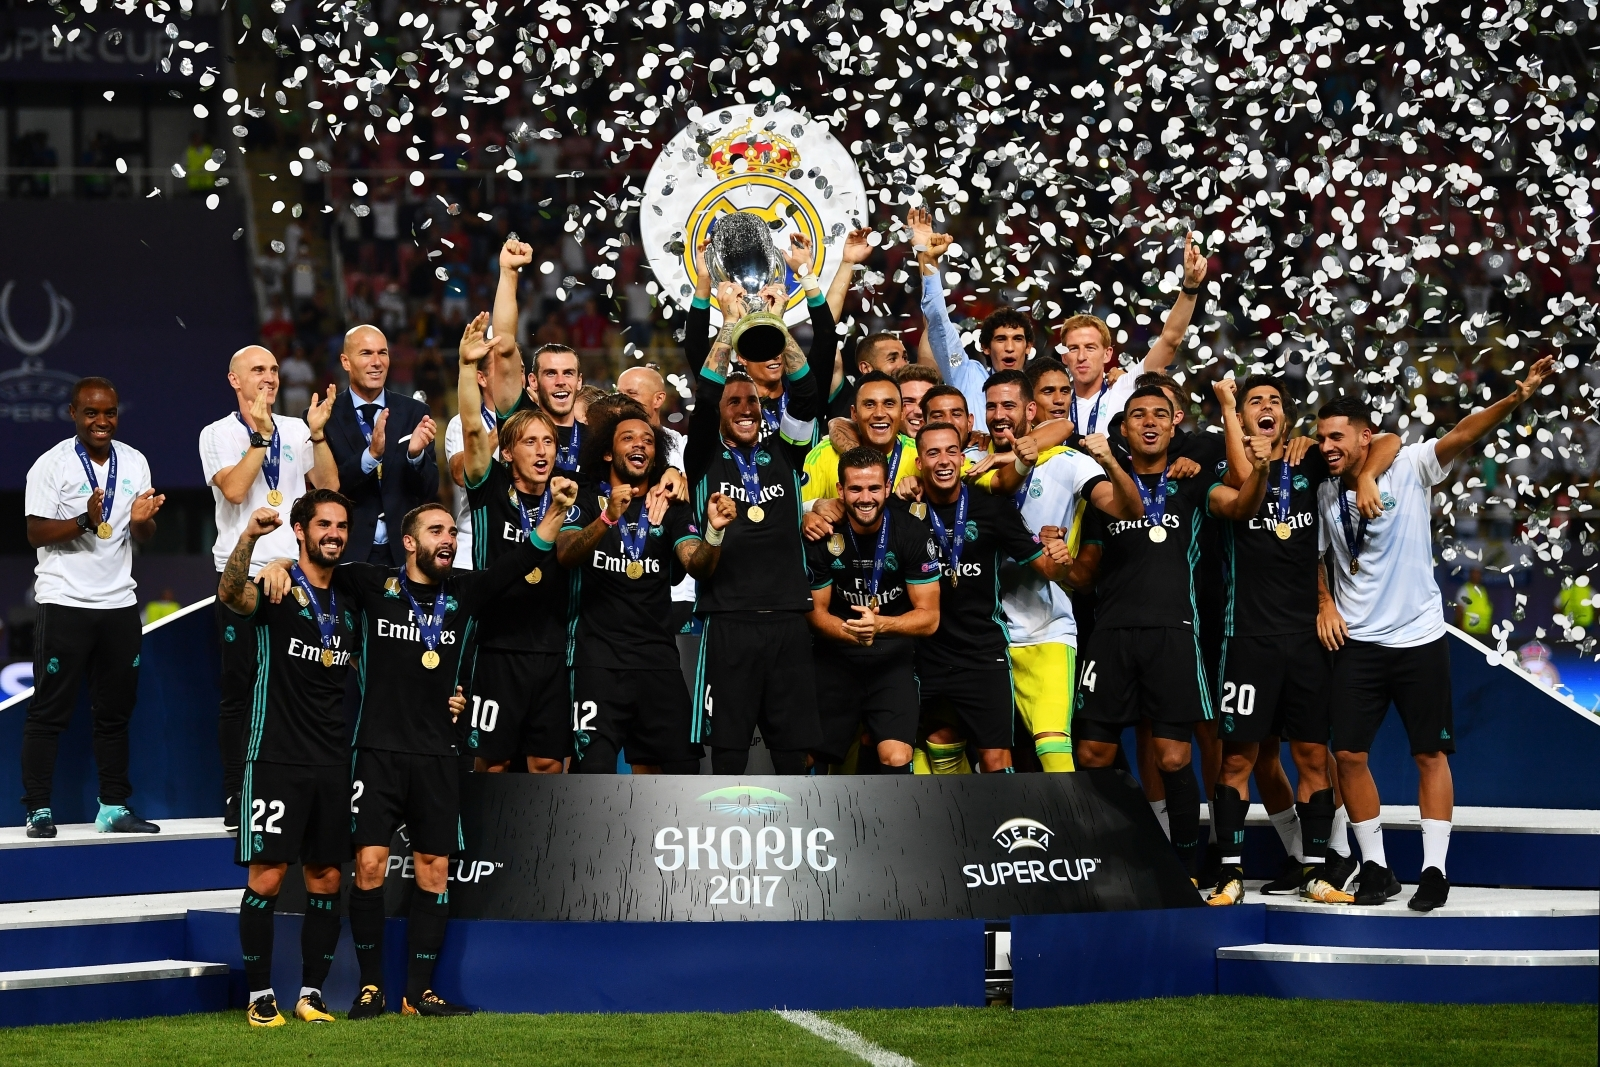 Cup win Manchester Super Real  after outclassing Madrid